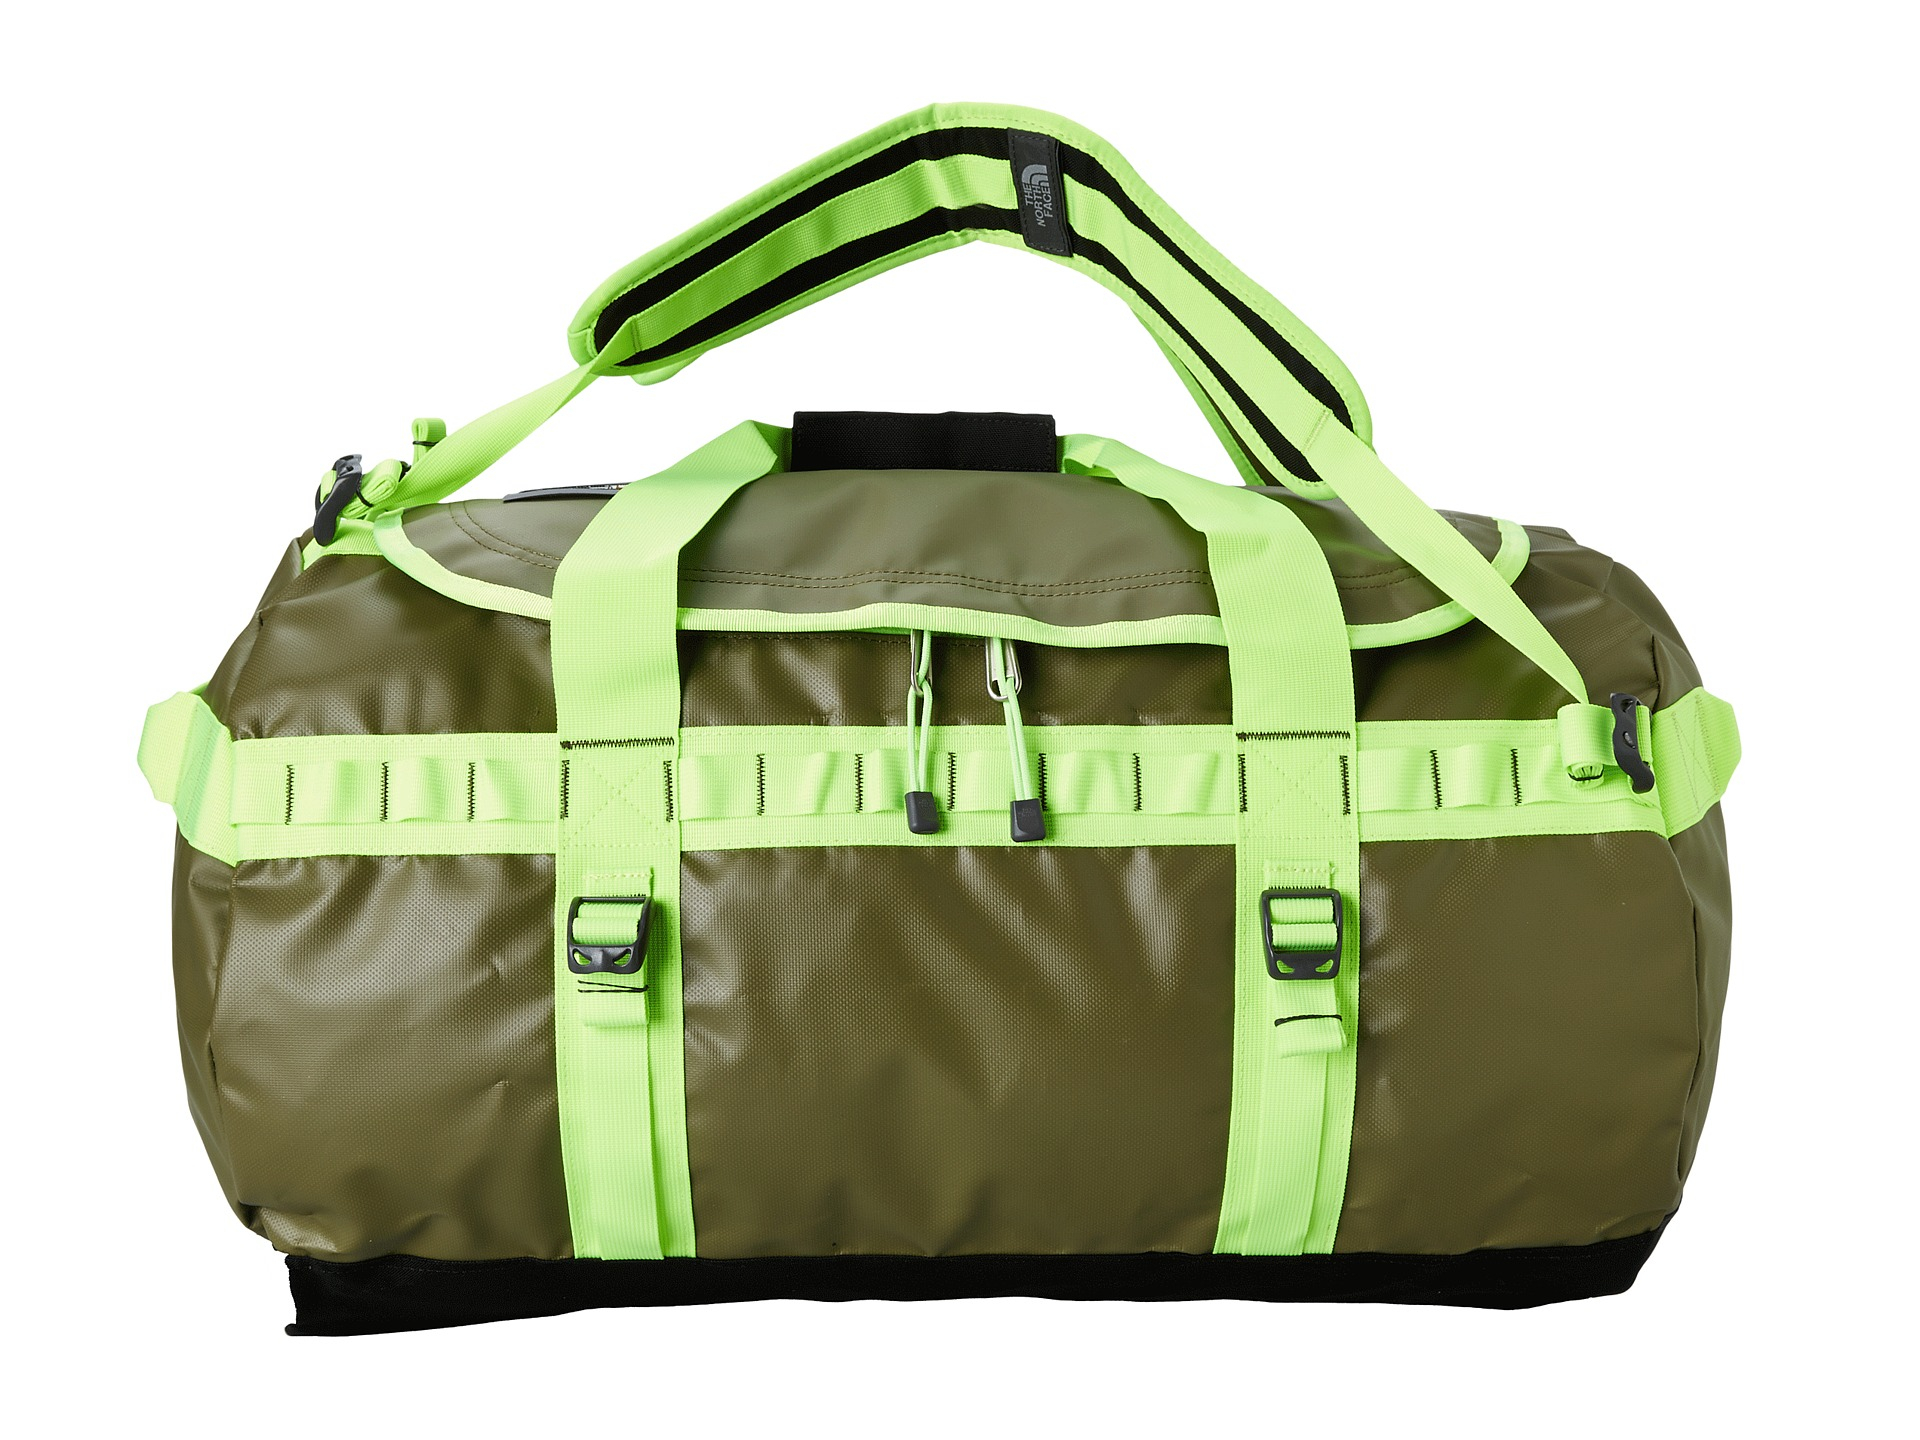 North Face Base Camp Schoudertas : Lyst the north face base camp duffel medium in green